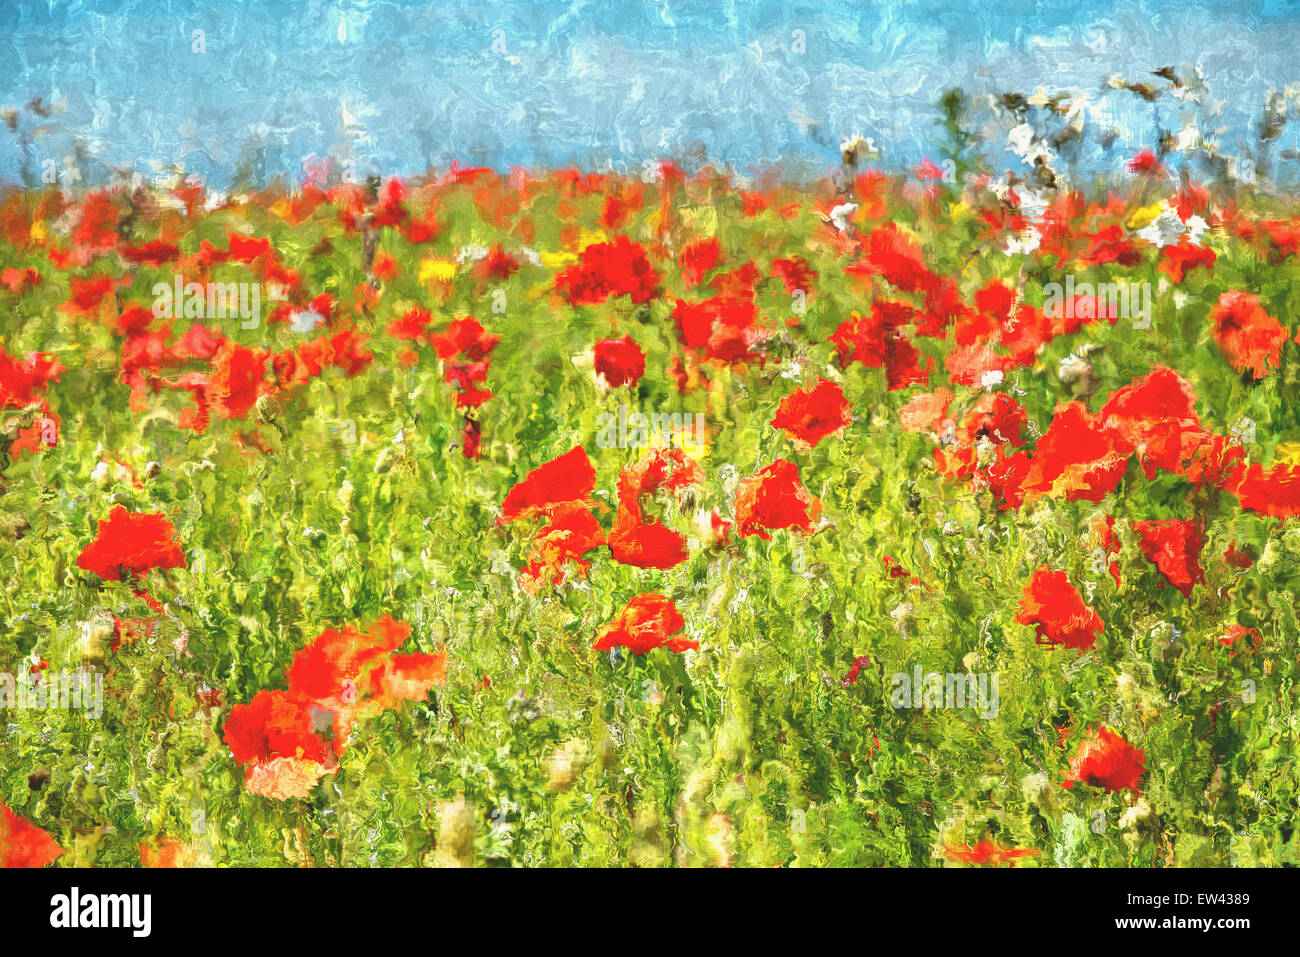 Abrstract painting of bright red Poppies in a field - Stock Image